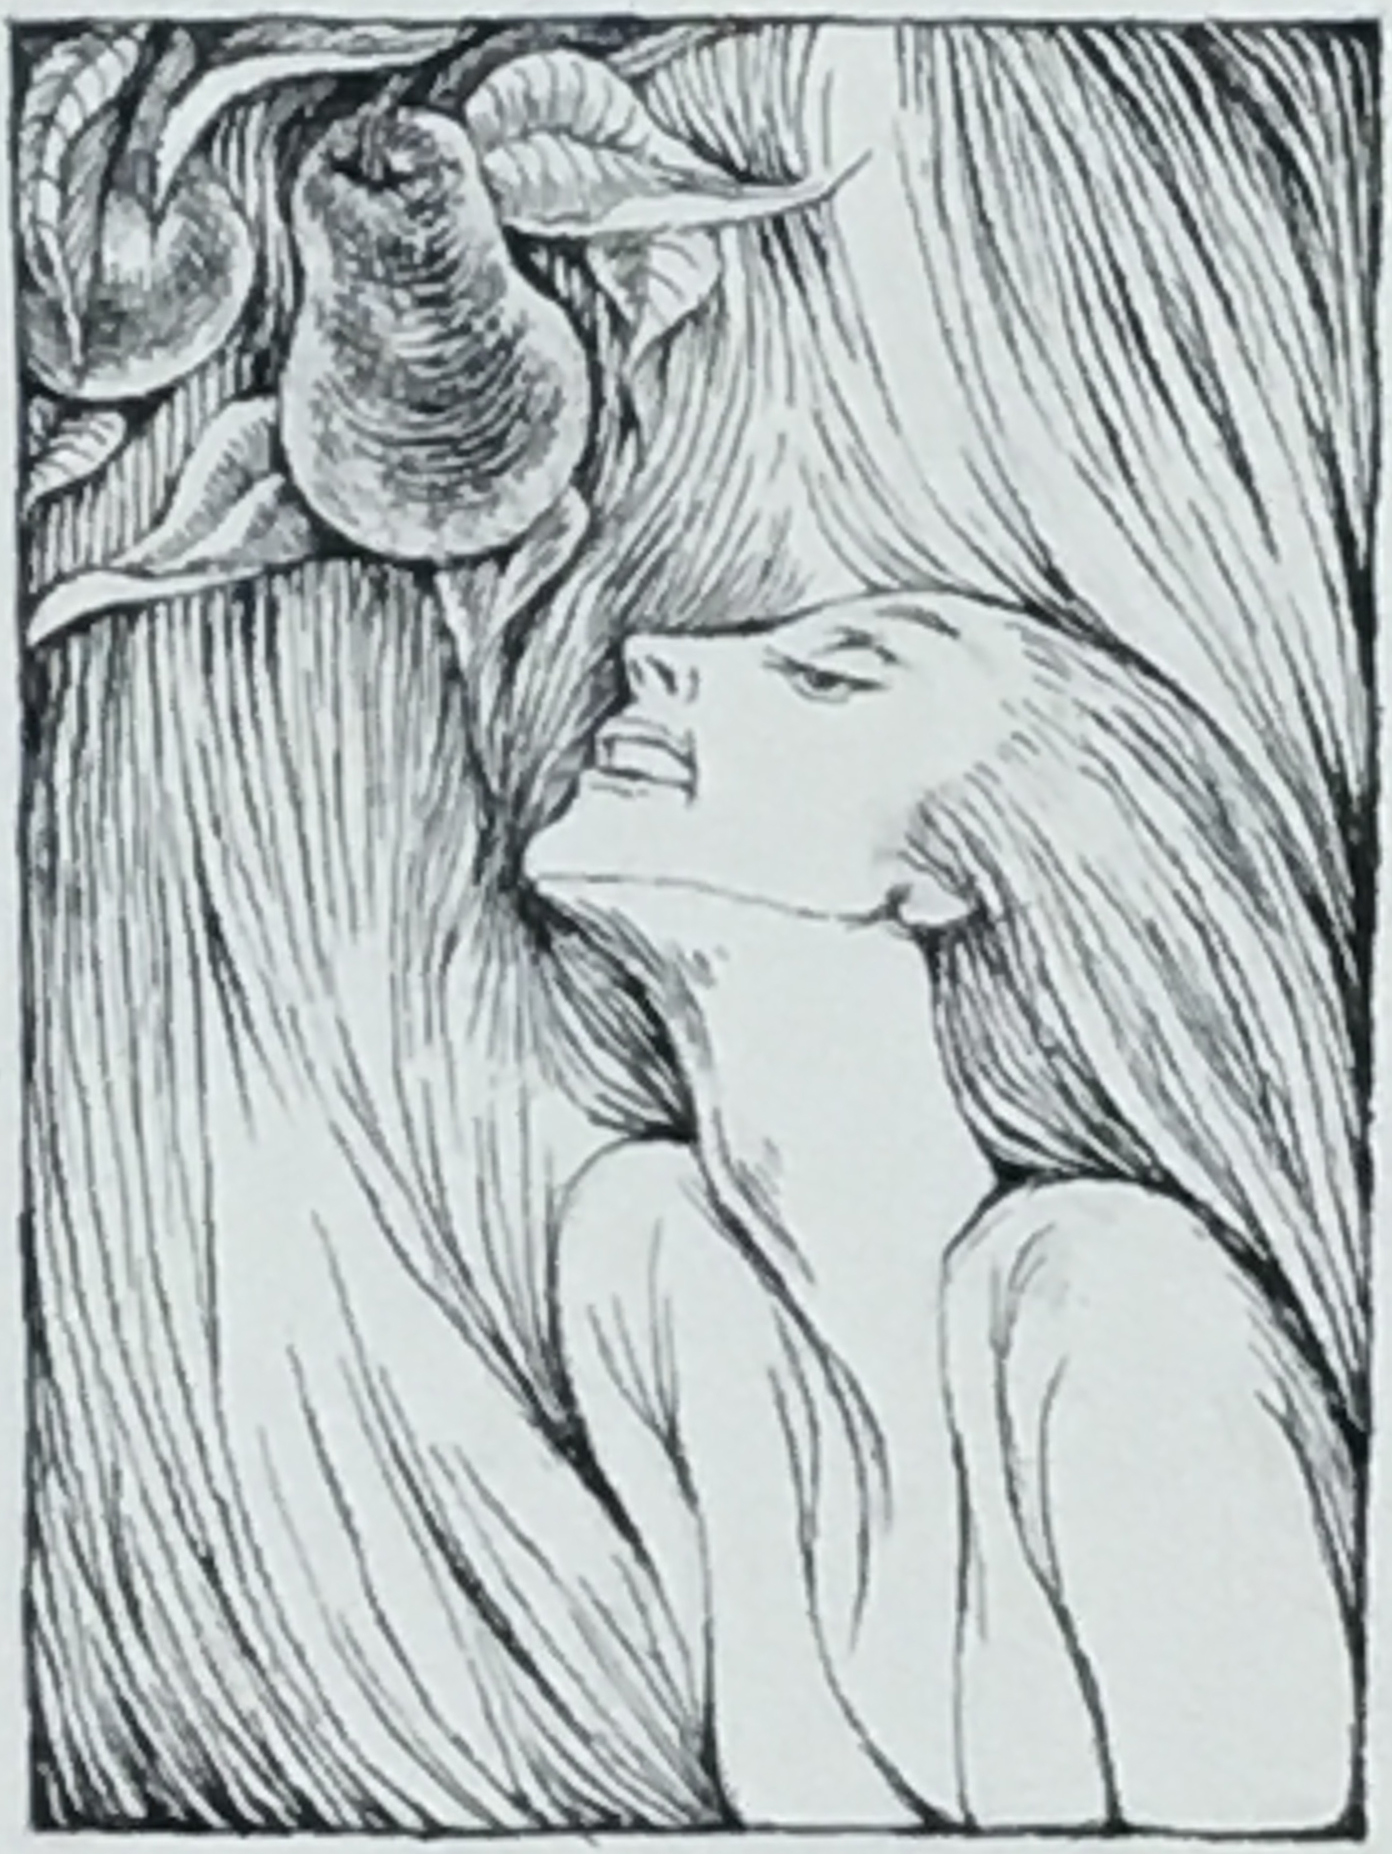 The Maiden Without Hands, 1970-71 ink on paper, 15 1/8 x 12 1/8 inches